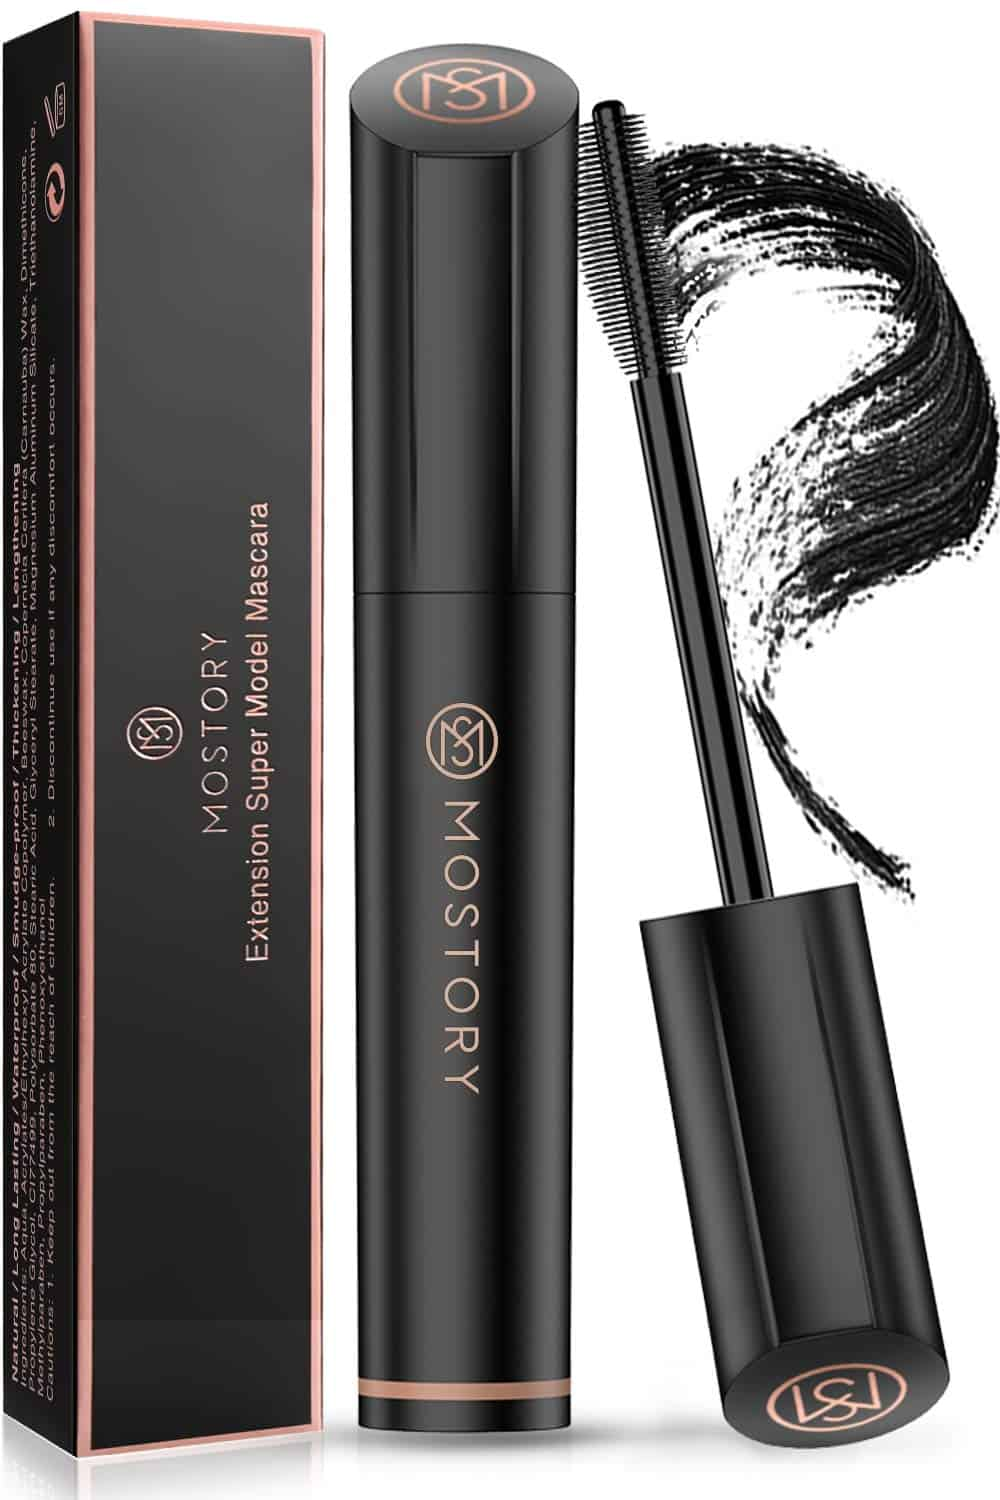 MOSTORY Black Lash Mascara 4D Silk Fiber Volume Waterproof Natural Extension Mascara Thickening Lengthening Voluminous Sweatproof Long Las